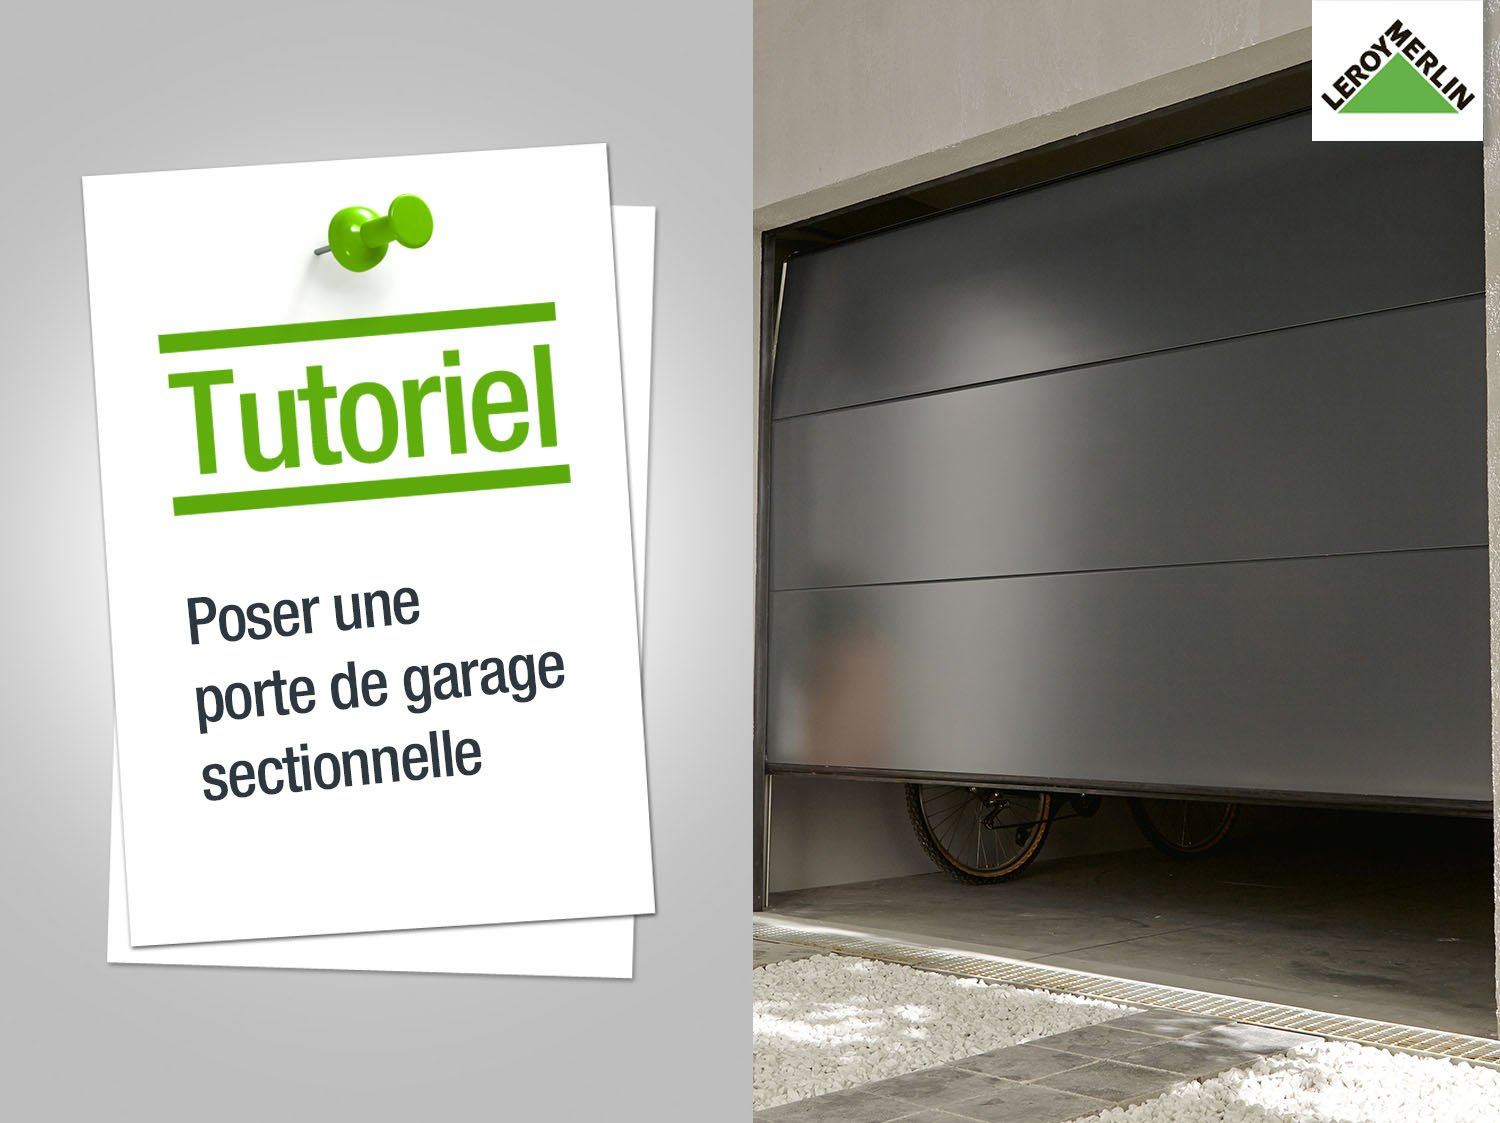 Porte de garage sectionnelle leroy merlin sur mesure for Leroy merlin porte garage sur mesure